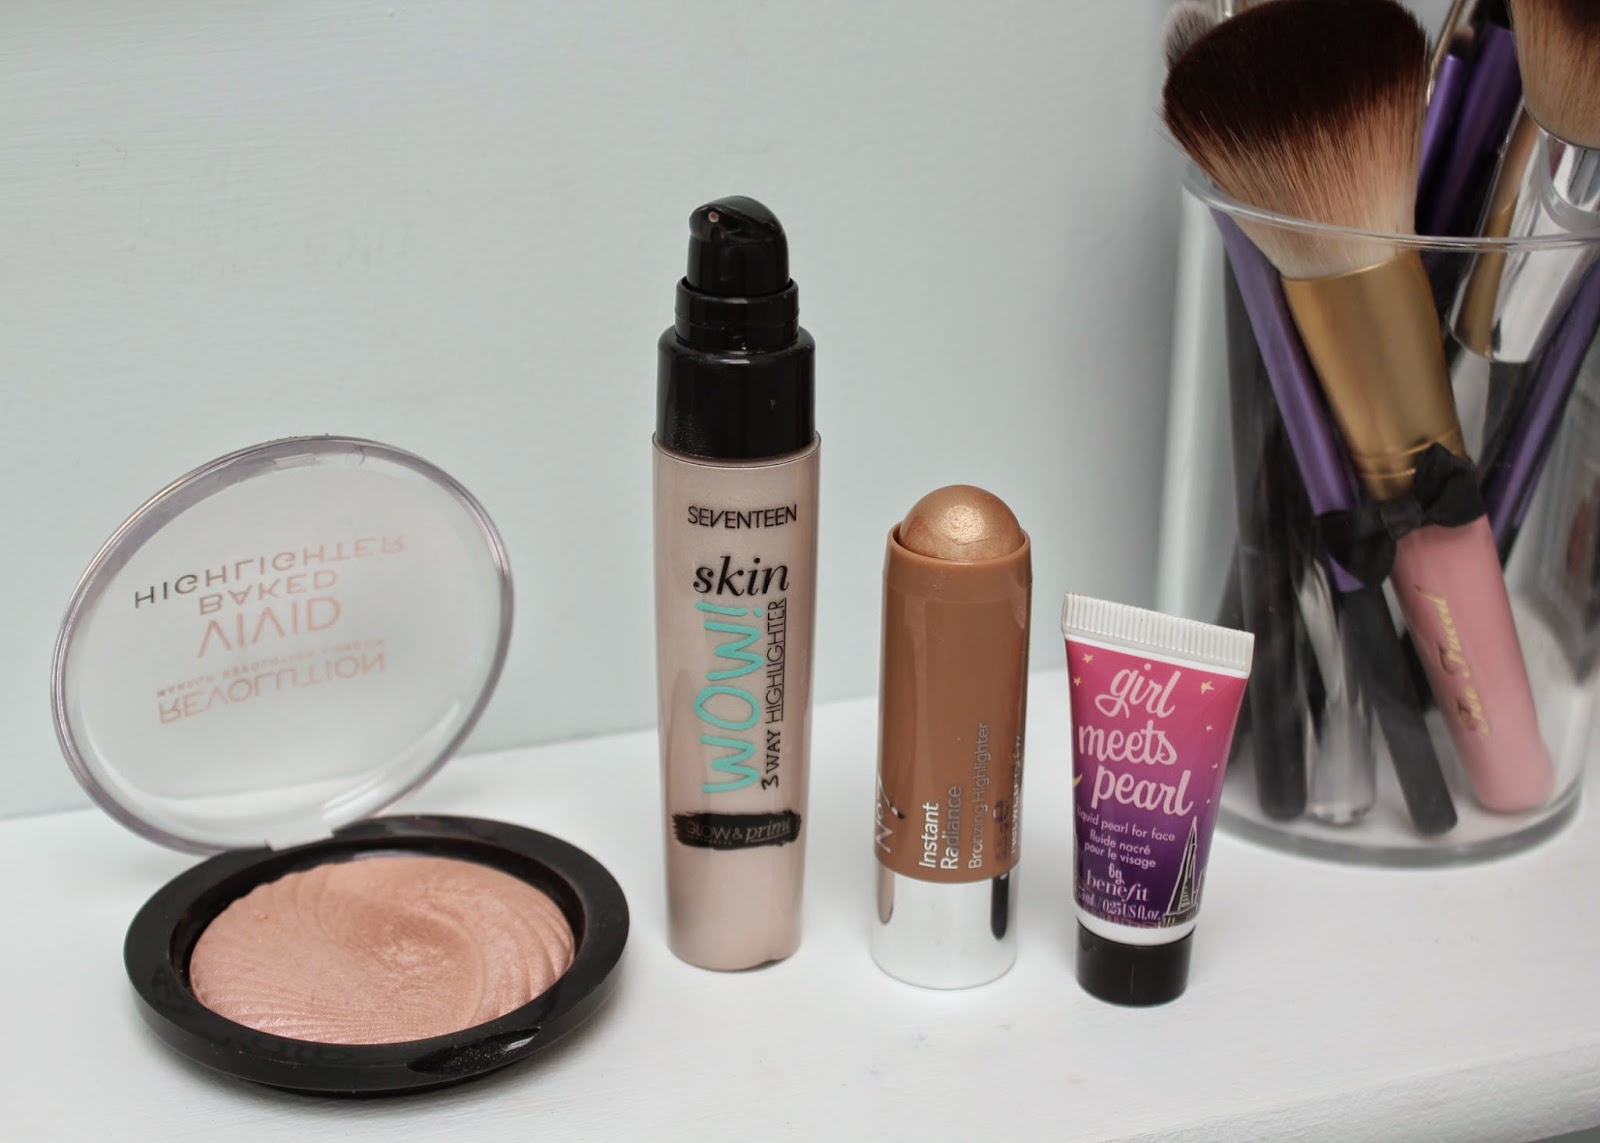 Makeup Revolution Baked Highlighter, Seventeen Skin Wow 3 Way Highlighter, Boots No 7 Instant Radiance Bronzing Highlighter, Benefit Girl Meets Pearl